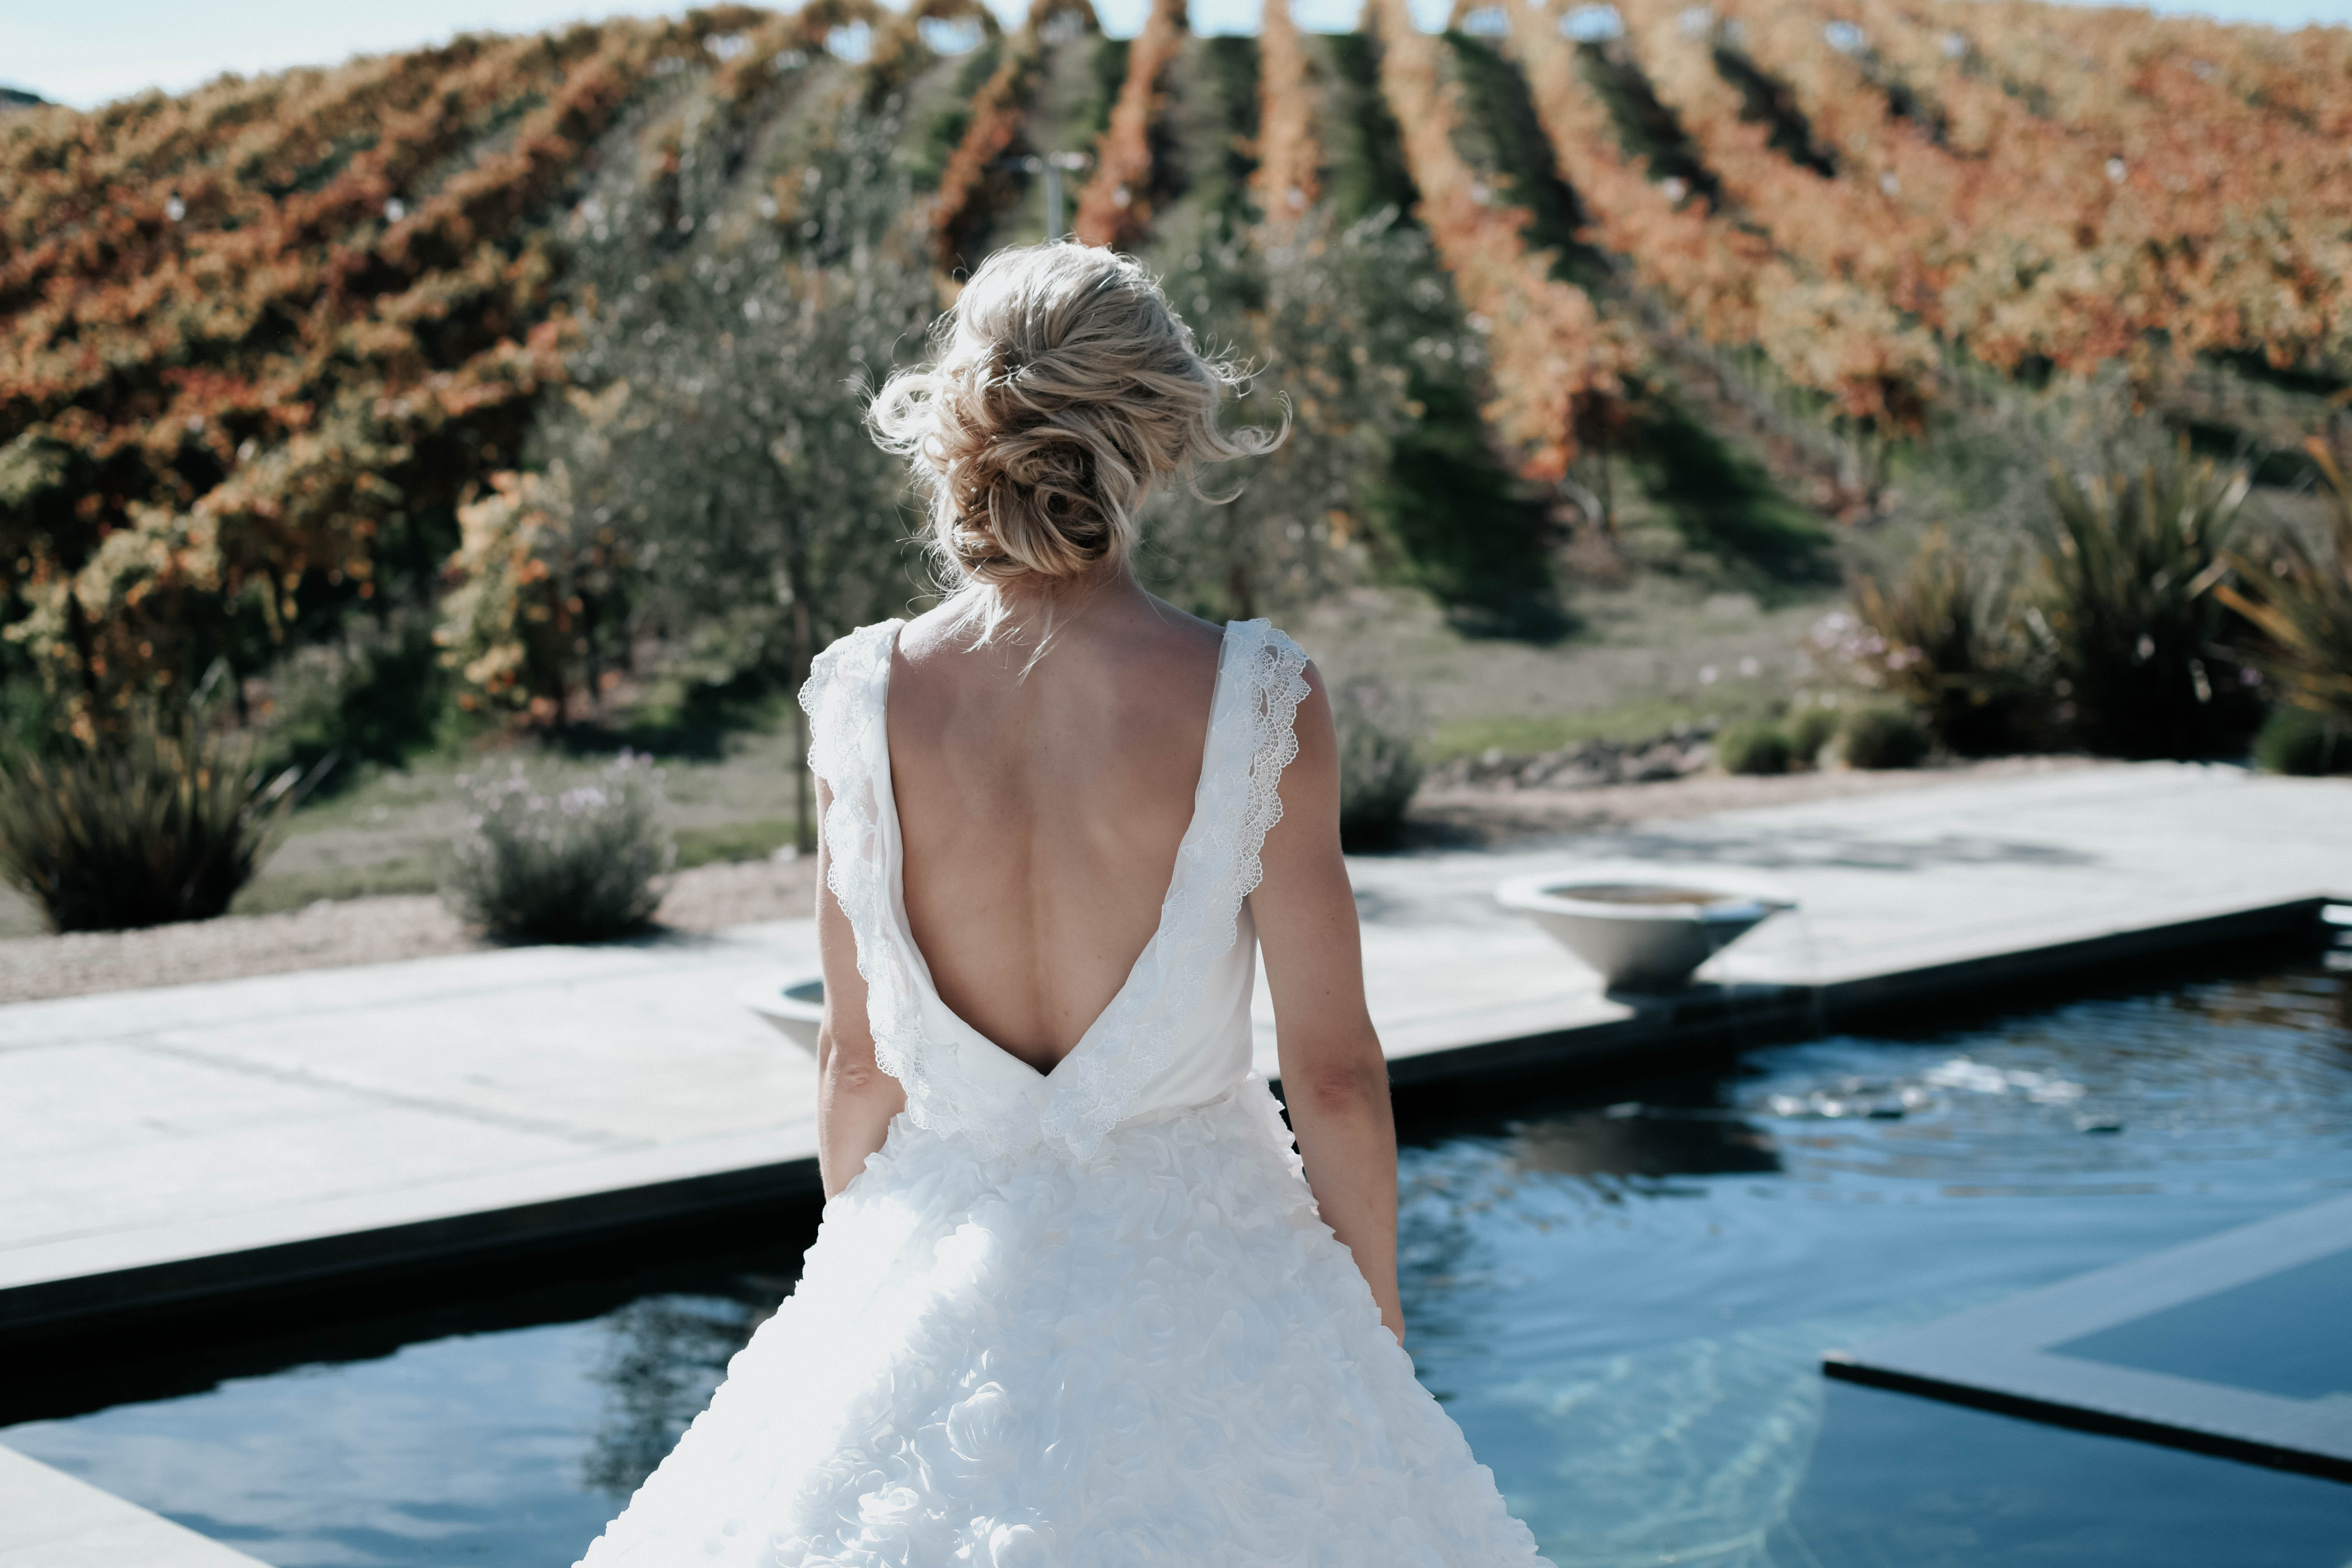 Bride from her back. She's facing a backdrop of vines and fountains.